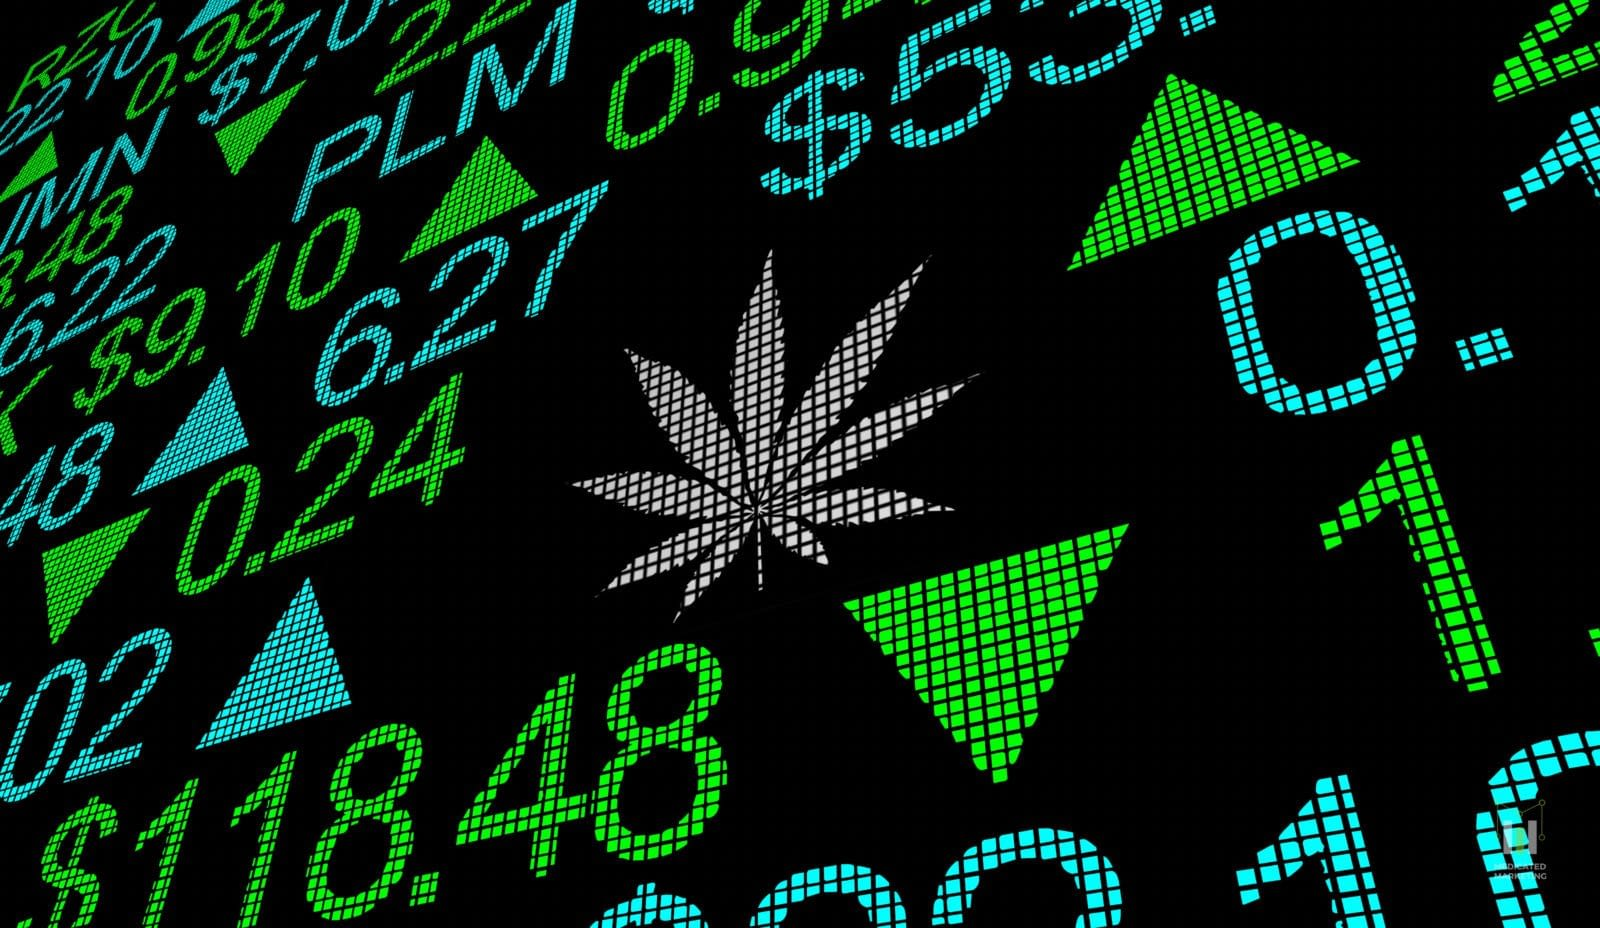 5 Ways To Find Investors For Your Cannabis Company